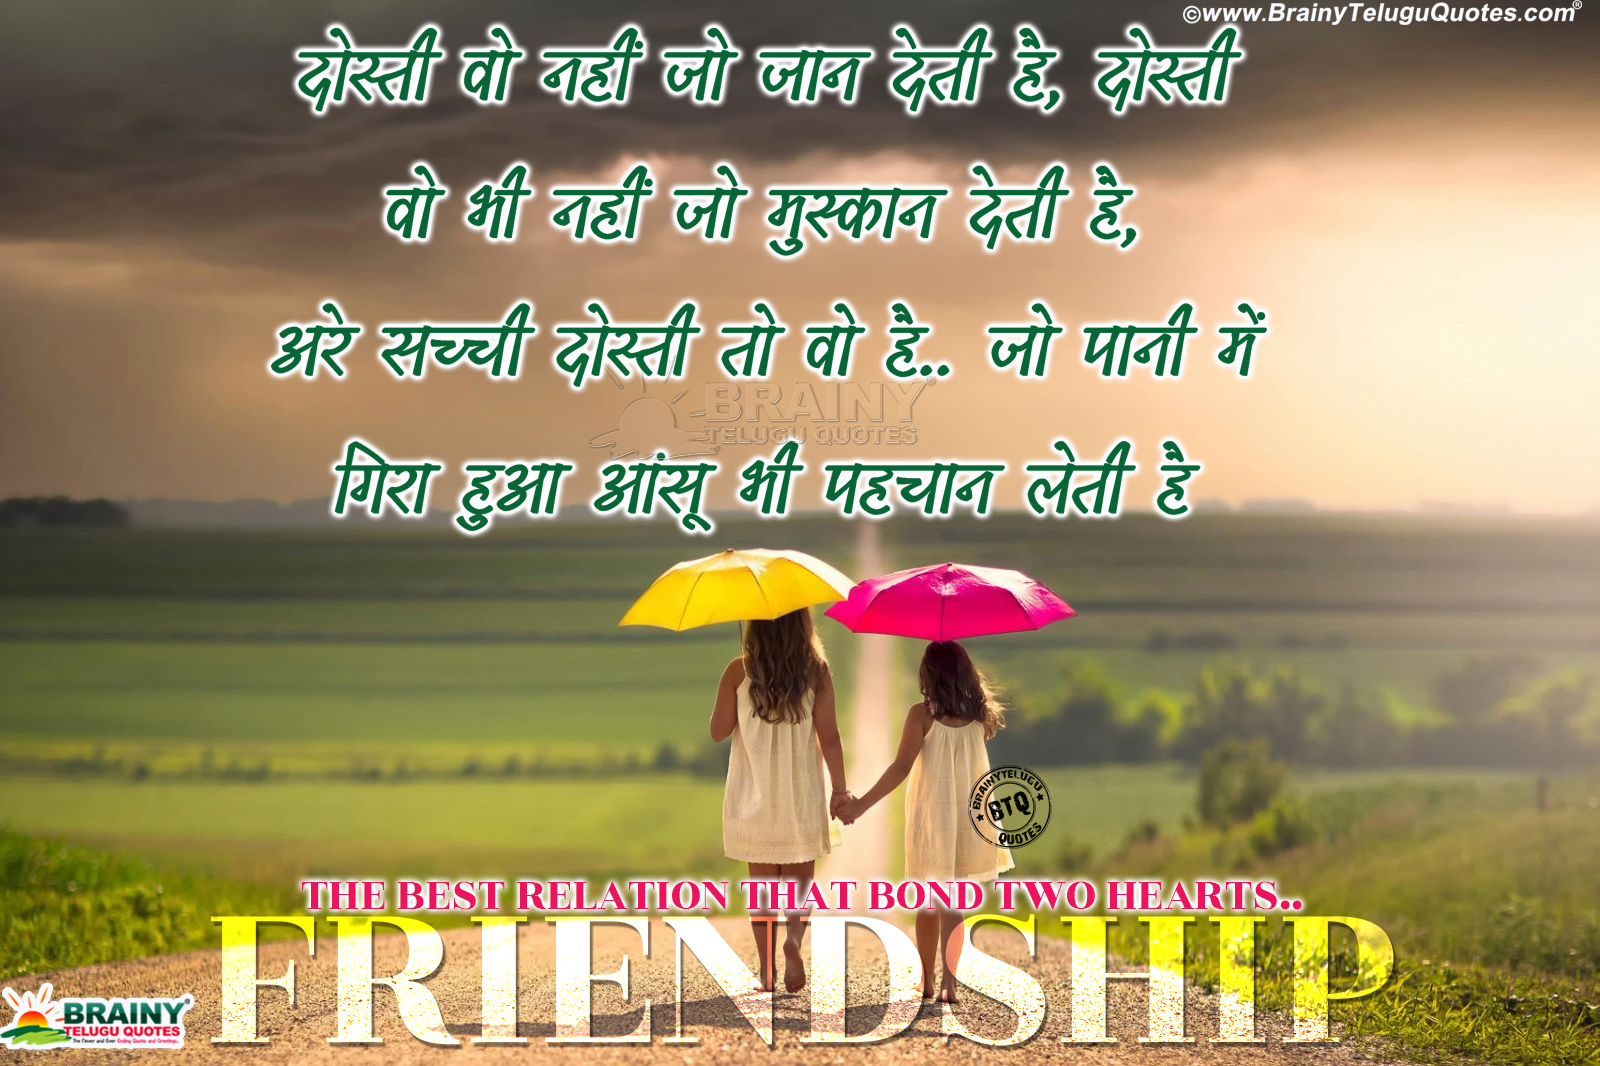 Touching Quotes About Friendship Heart Touching Friendship Quotes Hd Wallpapers In Hindi